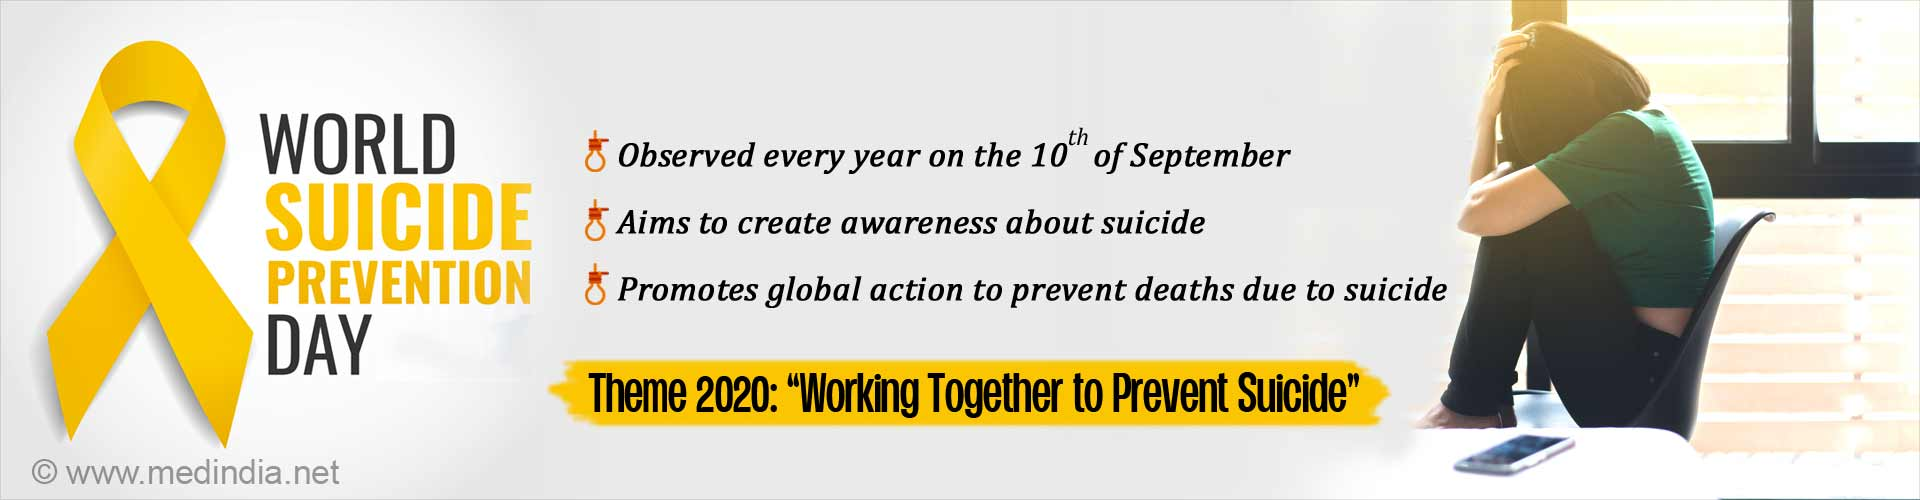 Working Together to Prevent Suicide- World Suicide Prevention Day